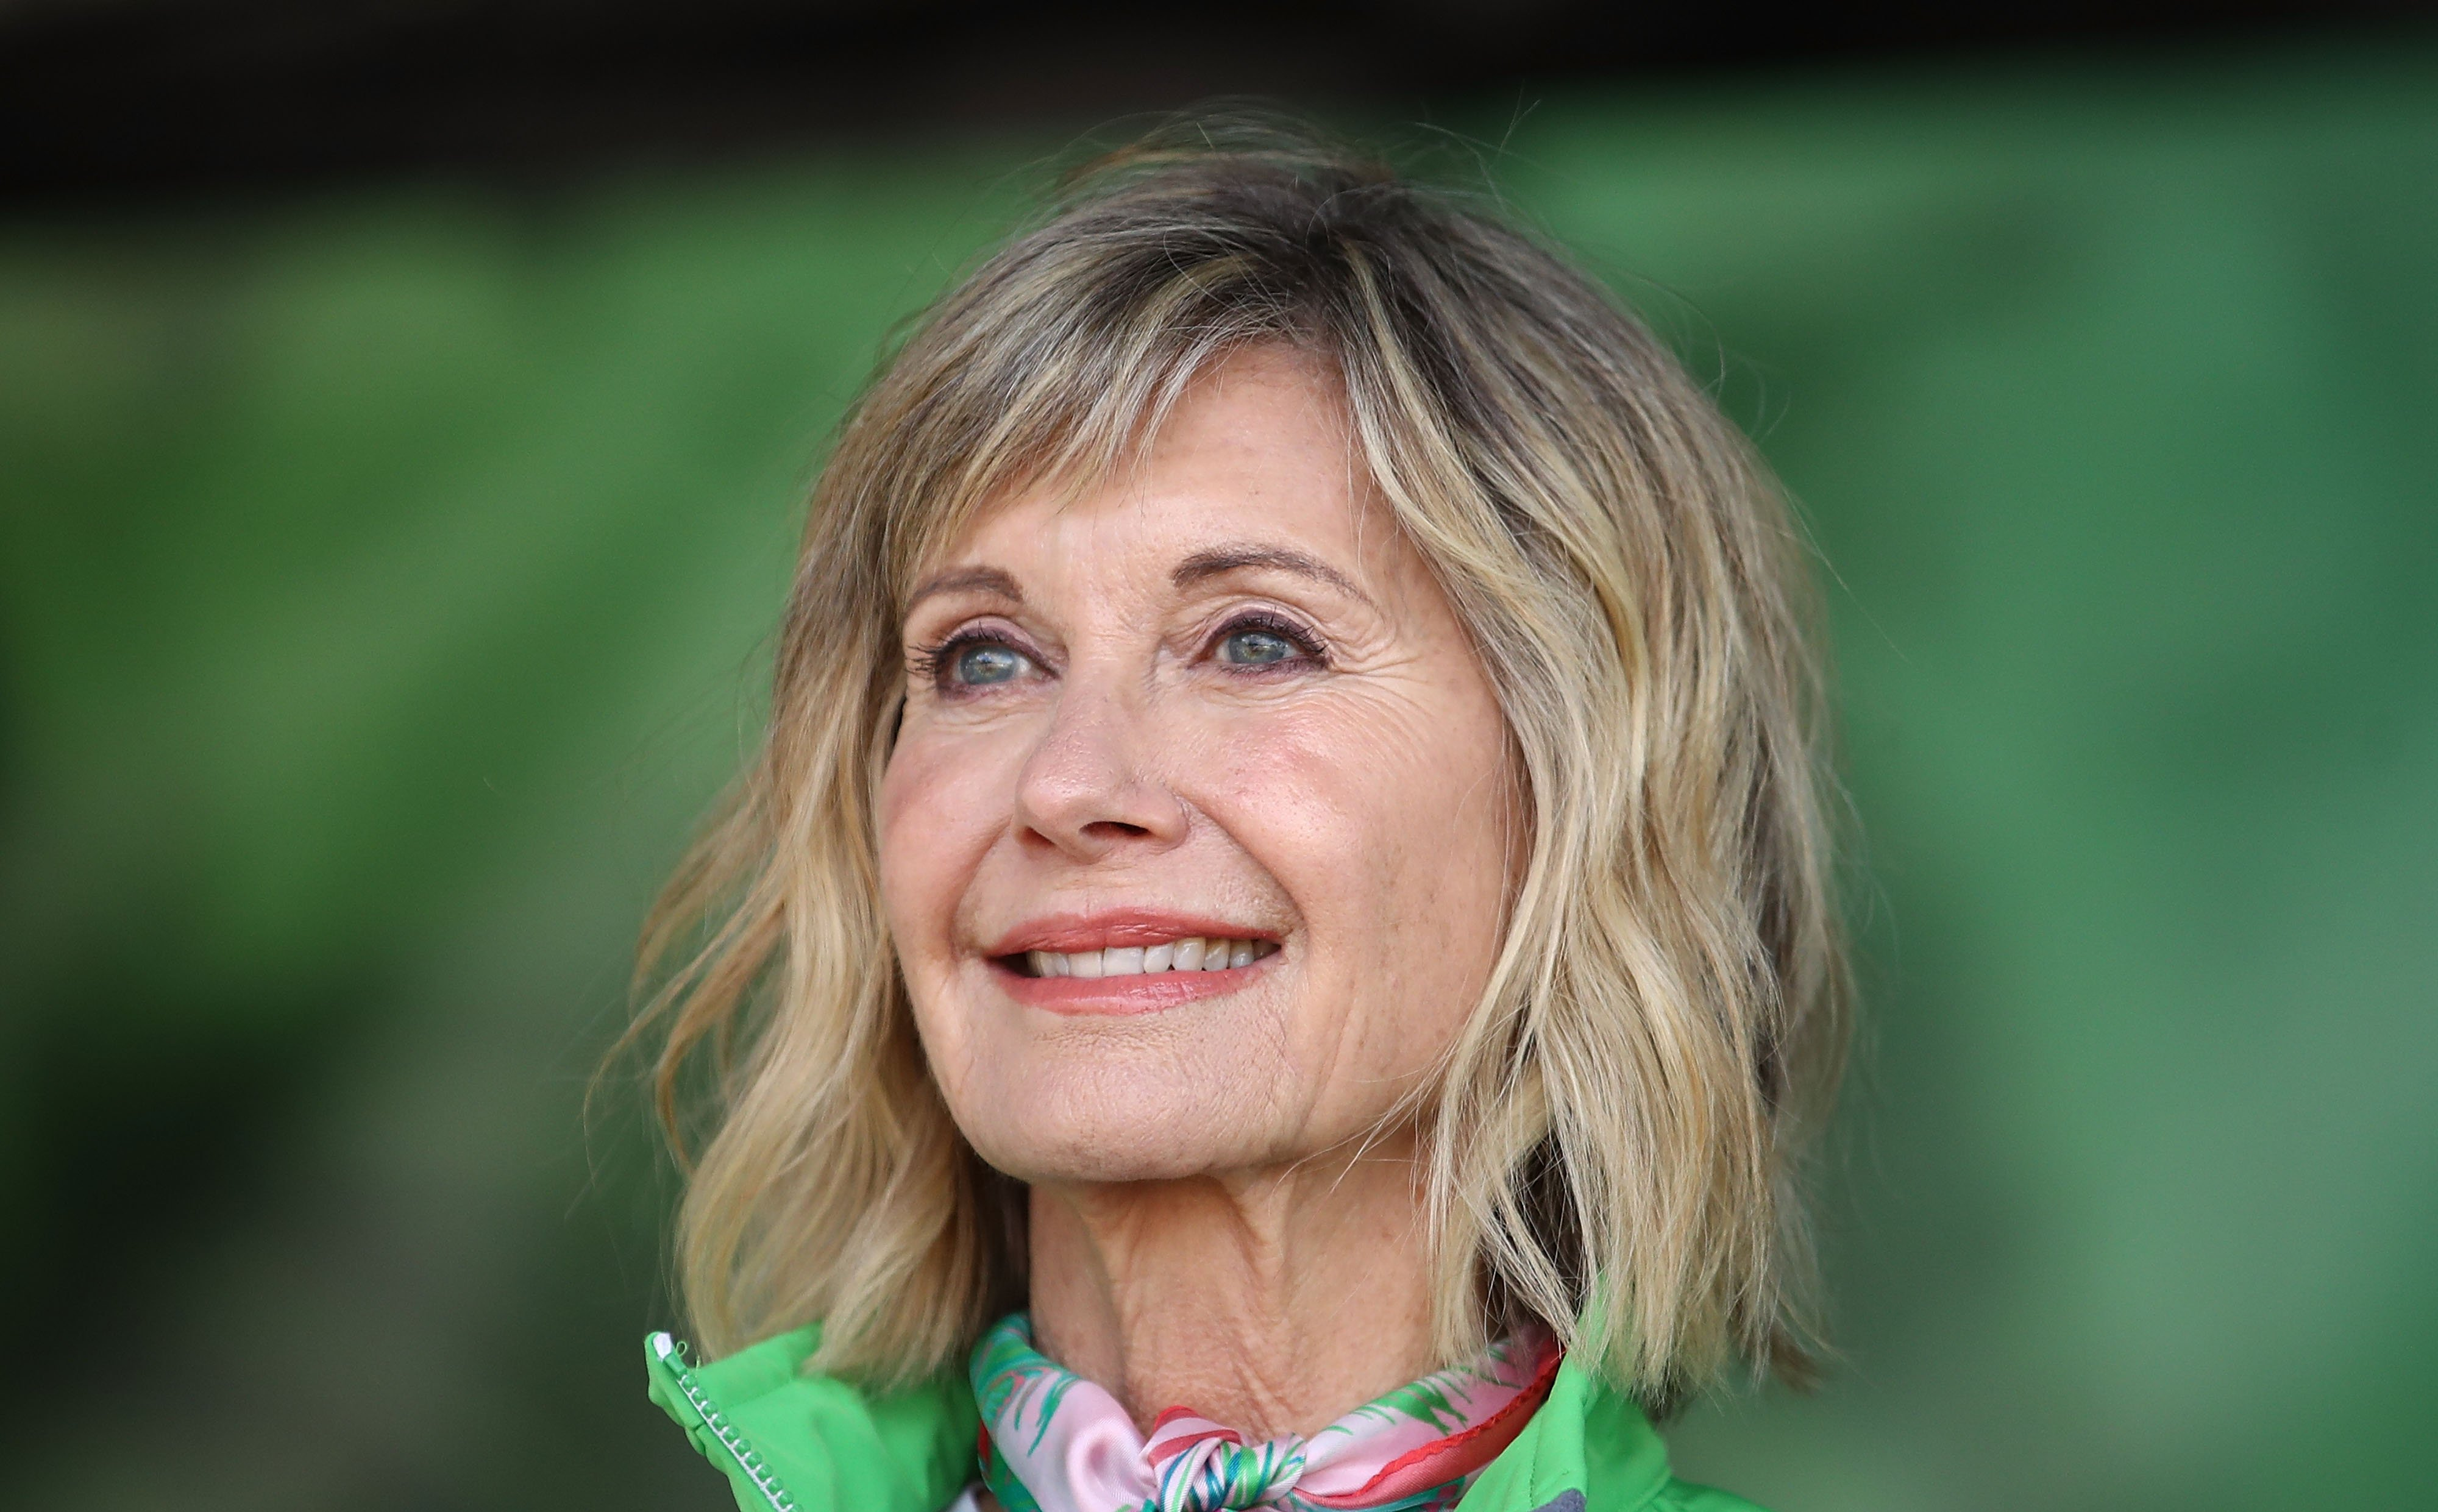 Olivia Newton-John at the annual Wellness Walk and Research Runon September 16, 2018 in Melbourne, Australia | Photo: Getty Images